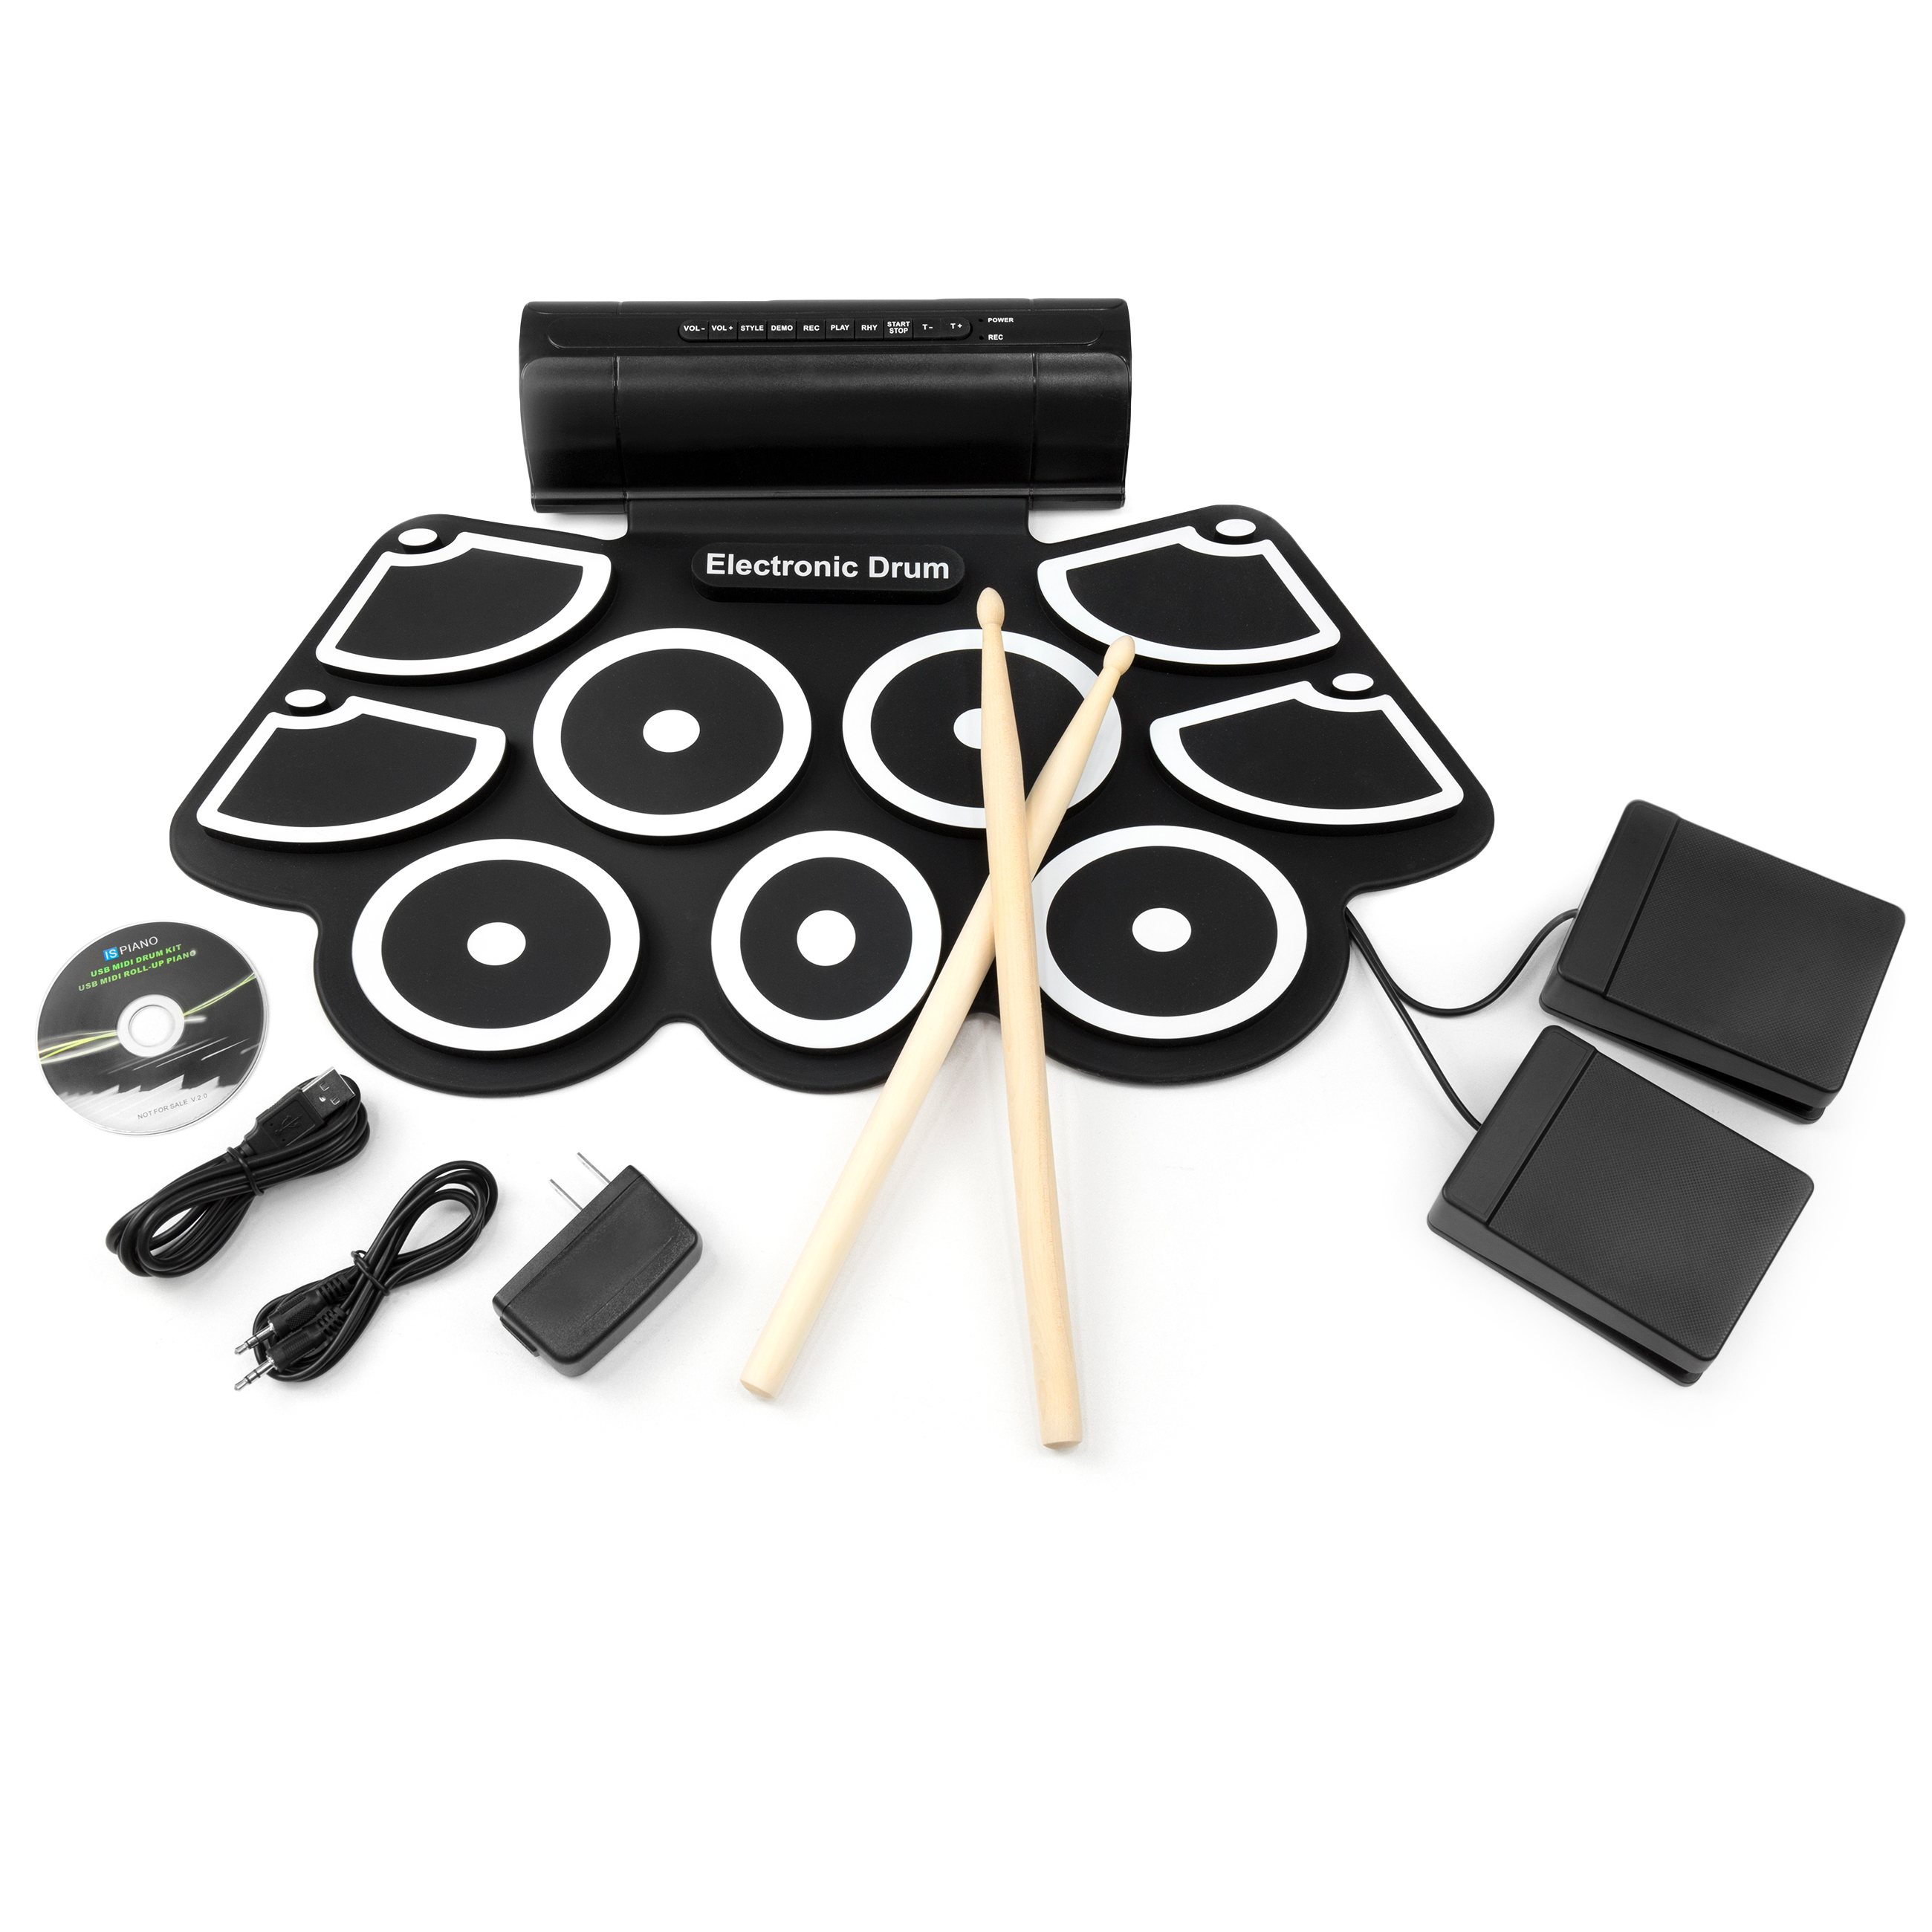 Best Choice Products Roll-Up Foldable Electronic Drum Set w  USB MIDI, Speakers, Foot... by Best Choice Products